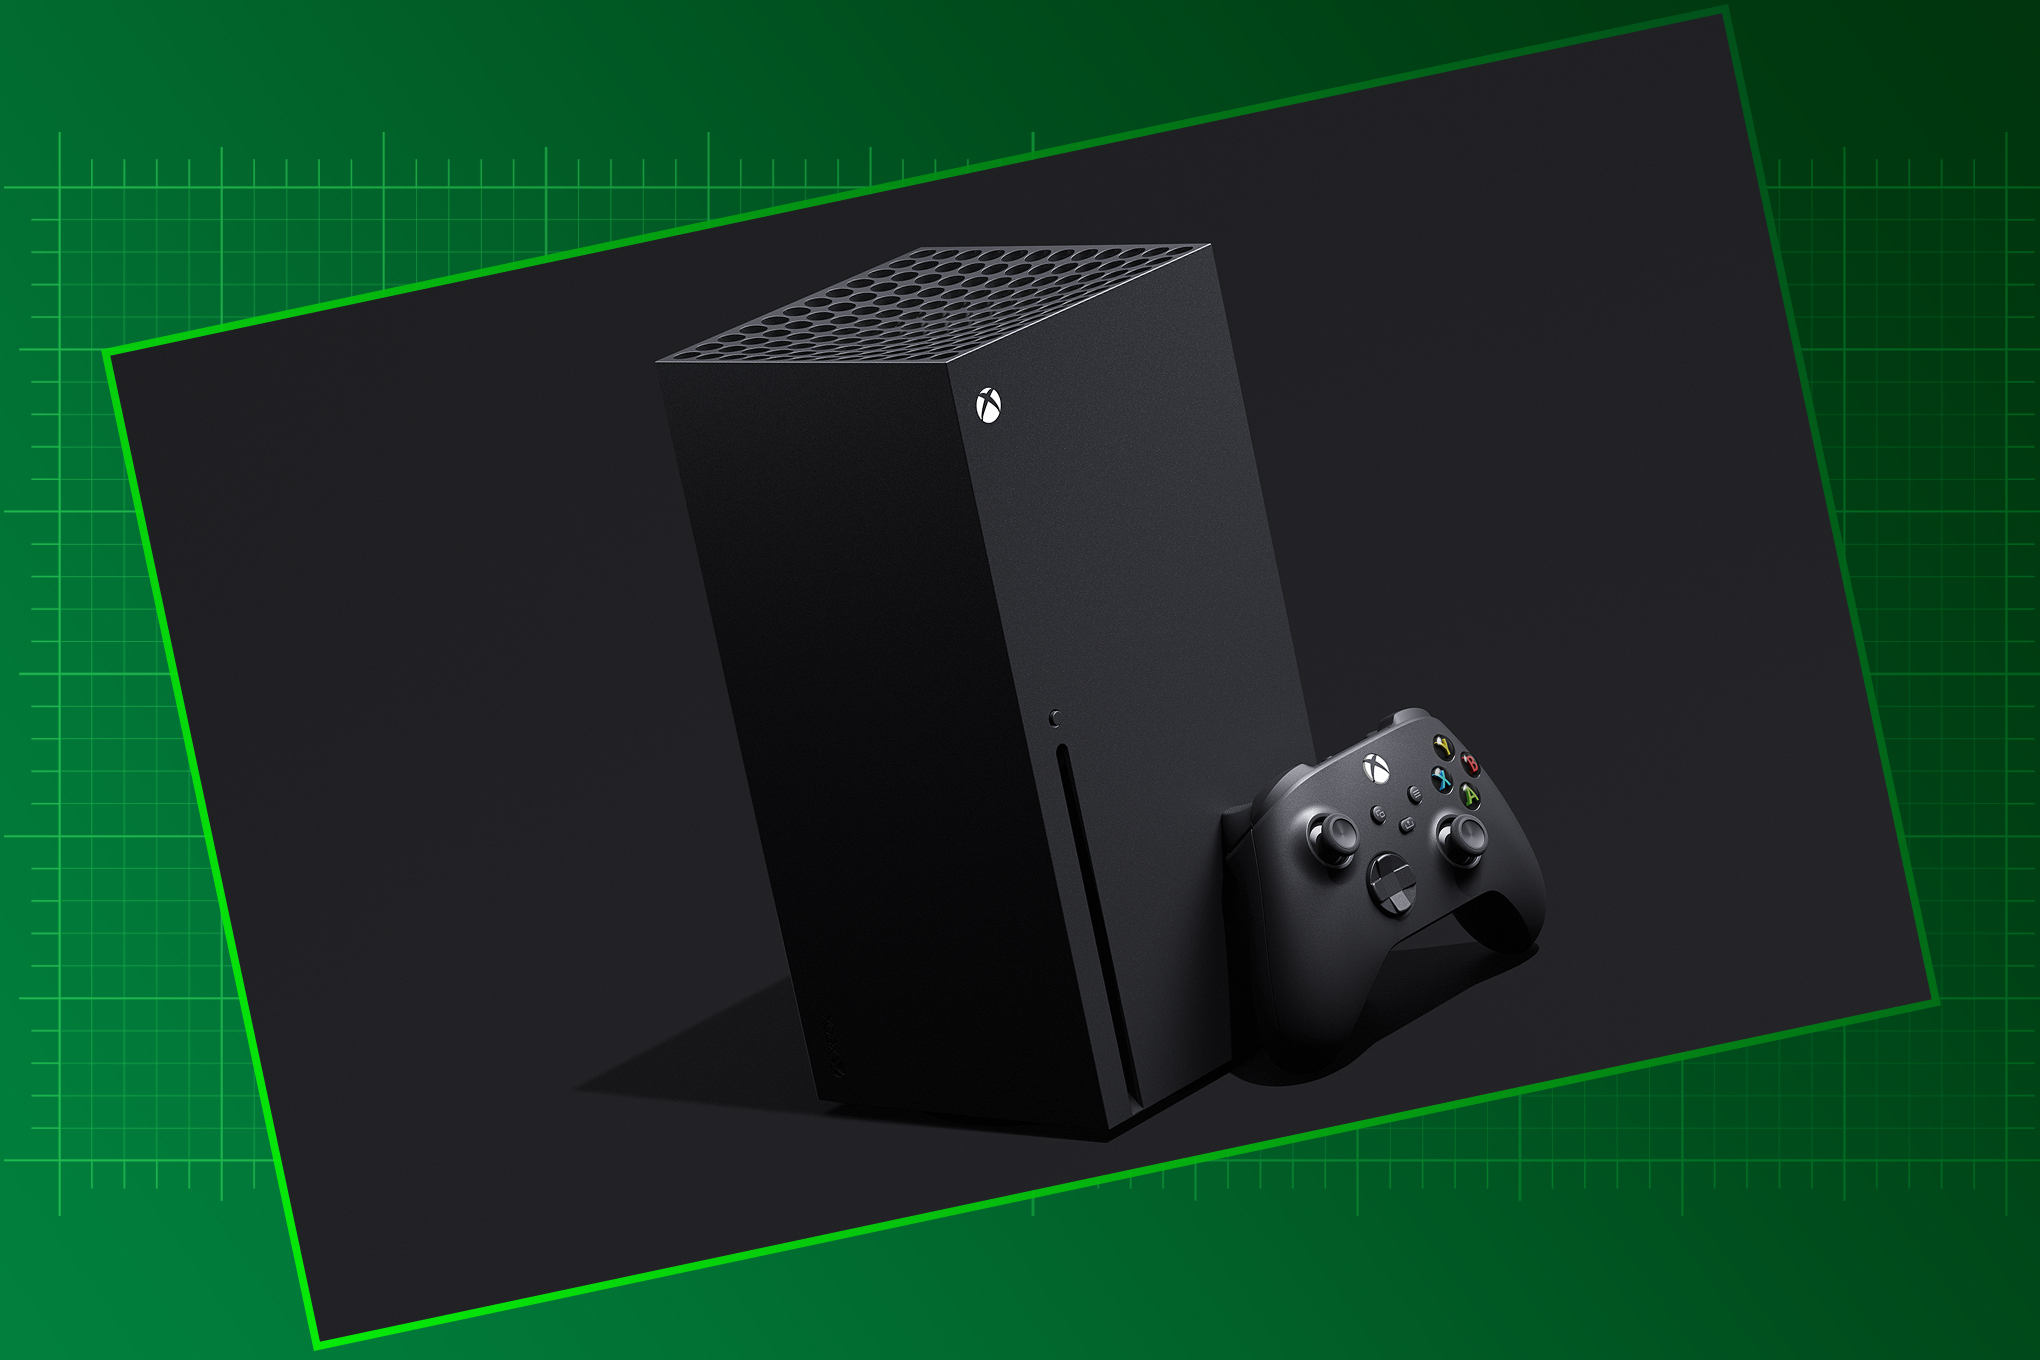 Xbox Series X console and controller on a graduated green graphic background